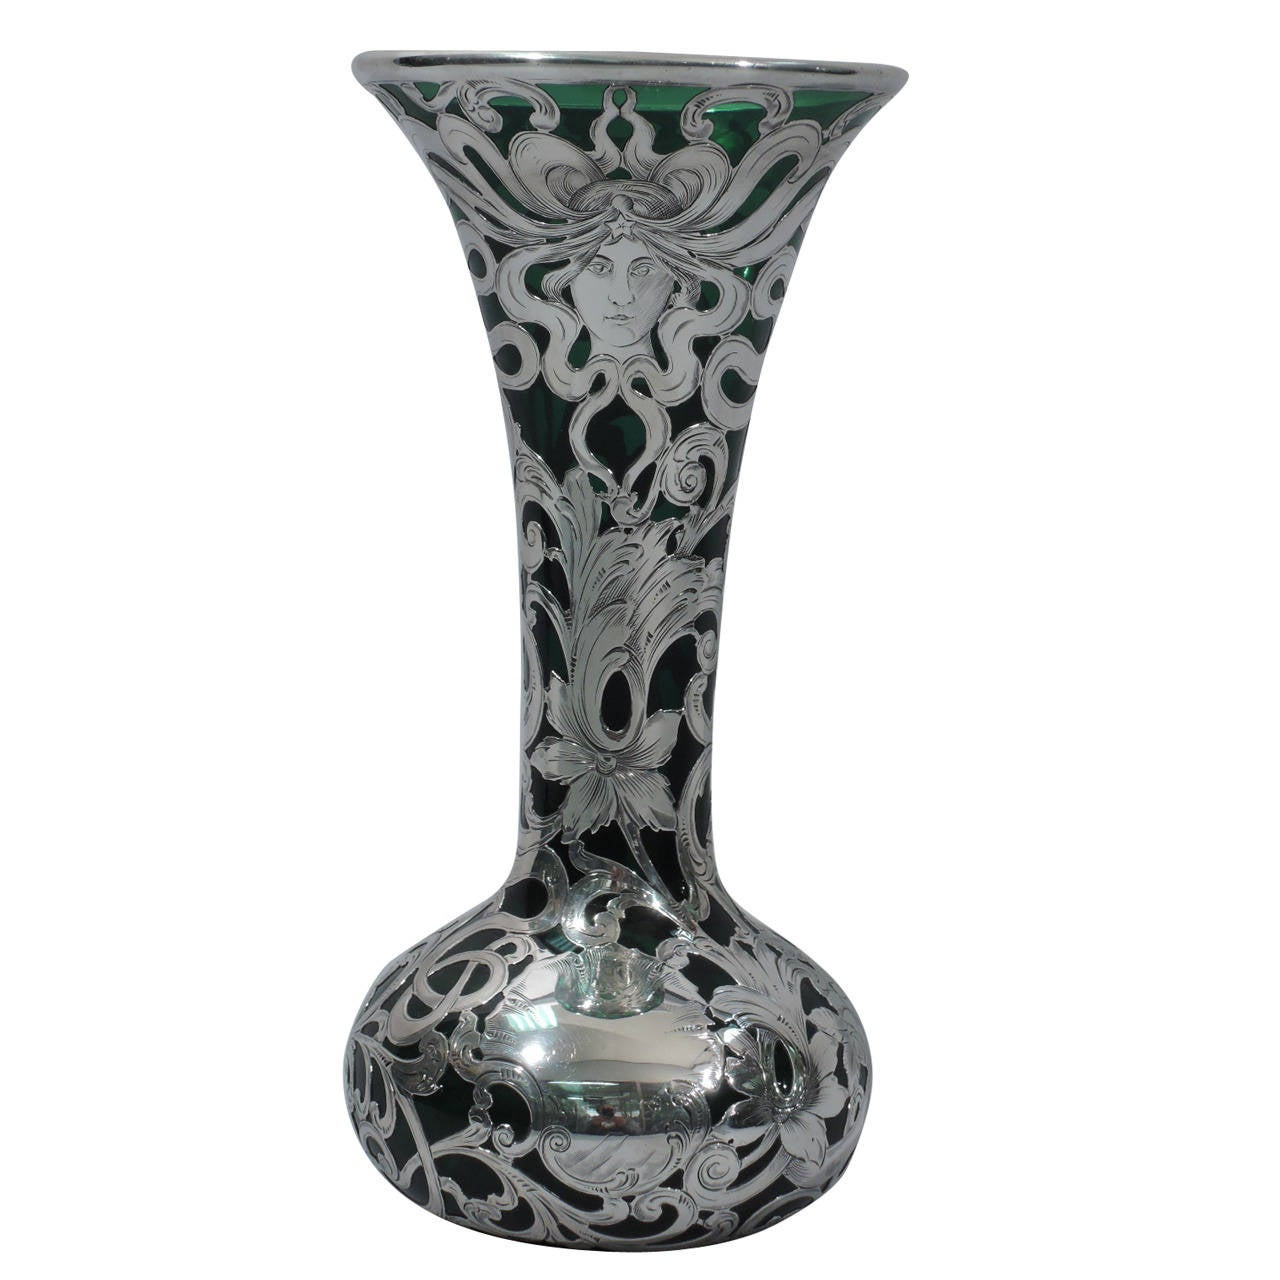 Dramatic art nouveau emerald glass vase with silver overlay by dramatic art nouveau emerald glass vase with silver overlay by alvin for sale reviewsmspy